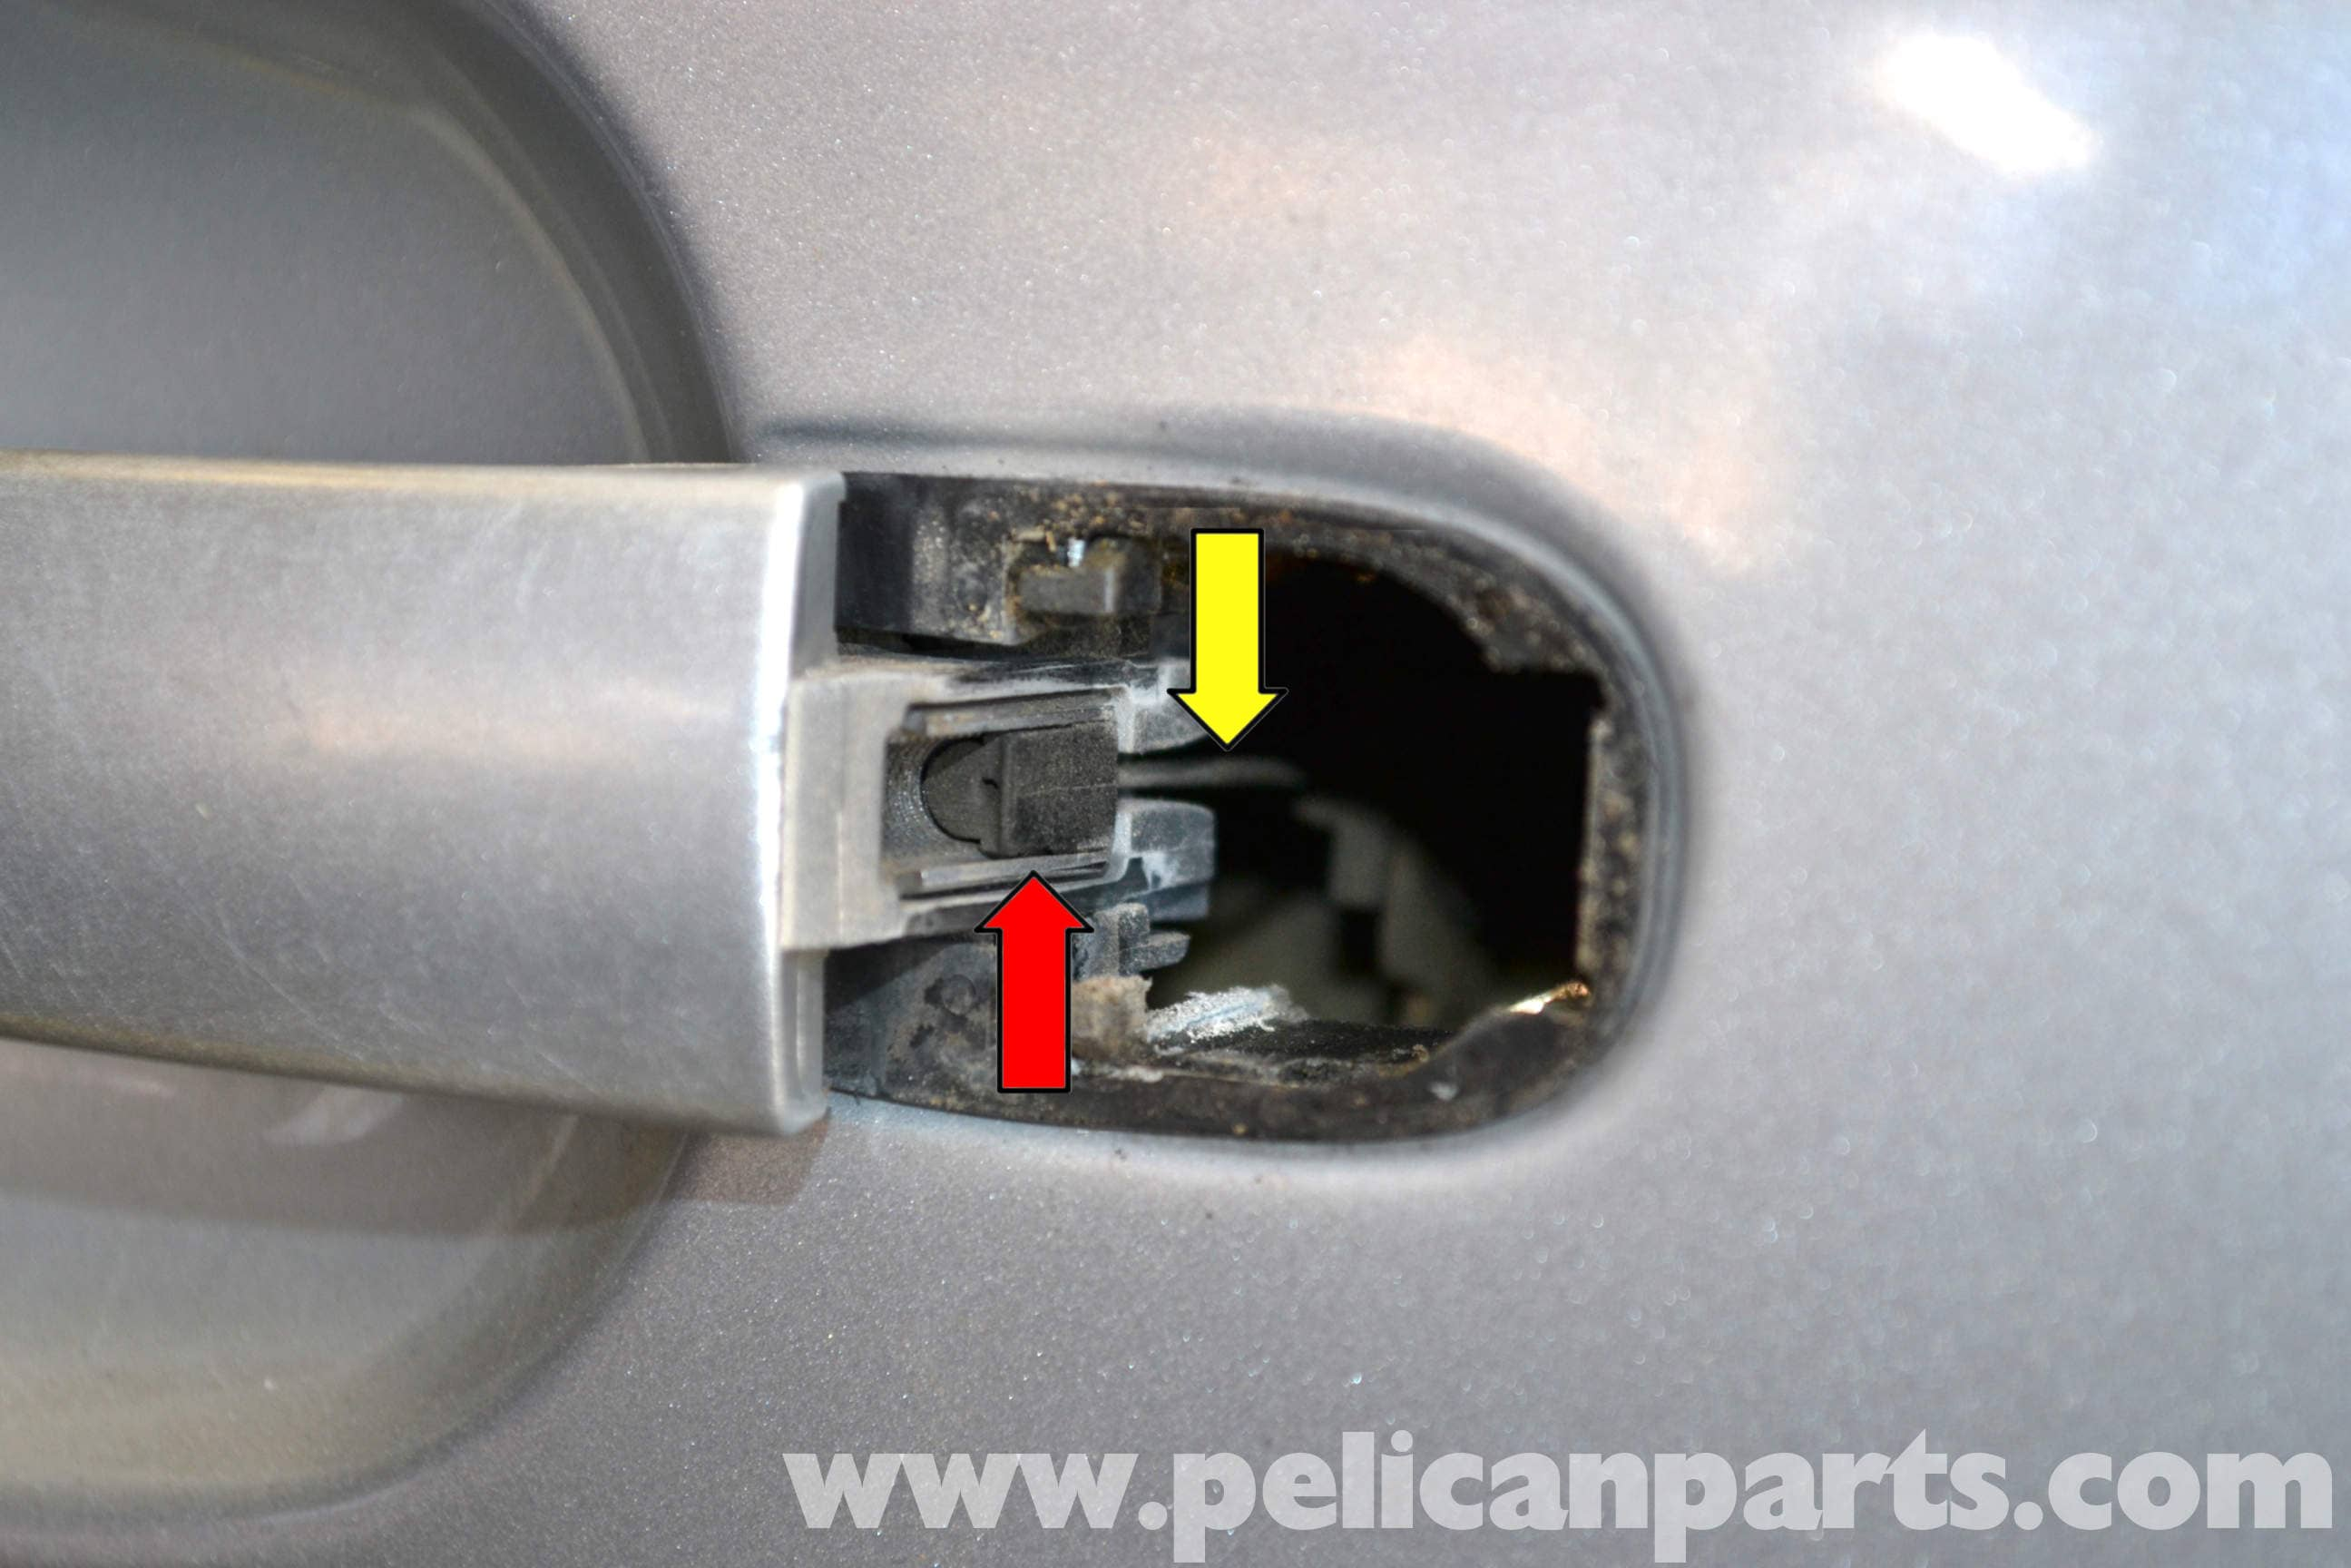 Volkswagen Golf Gti Mk Iv Exterior Door Handle Lock Tumble And Mini Cooper R56 Stereo Wiring Diagram Large Image Extra